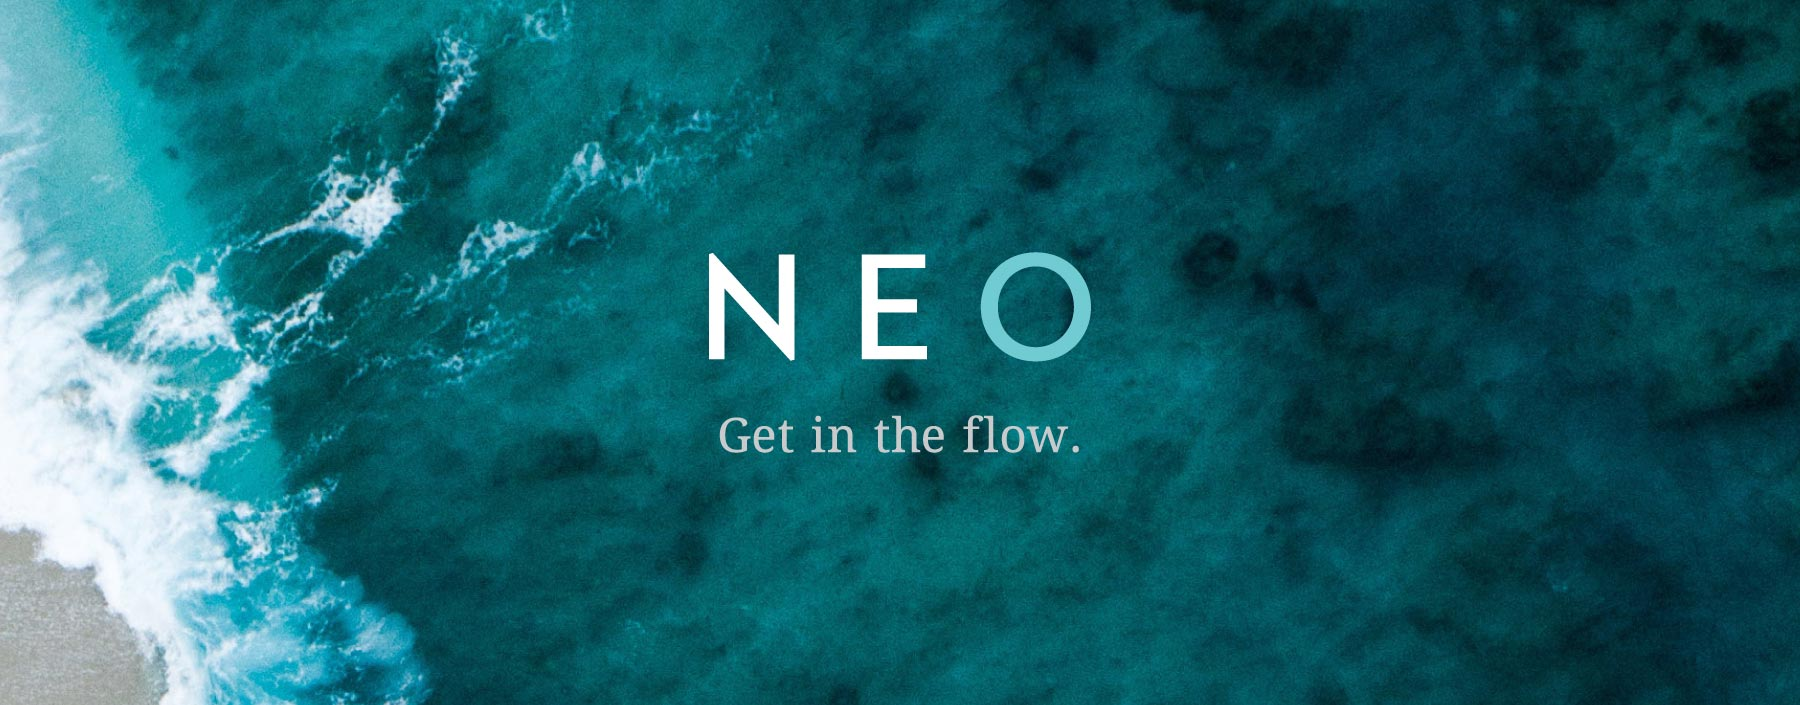 NEO logo and tagline, designed by Lisa Furze